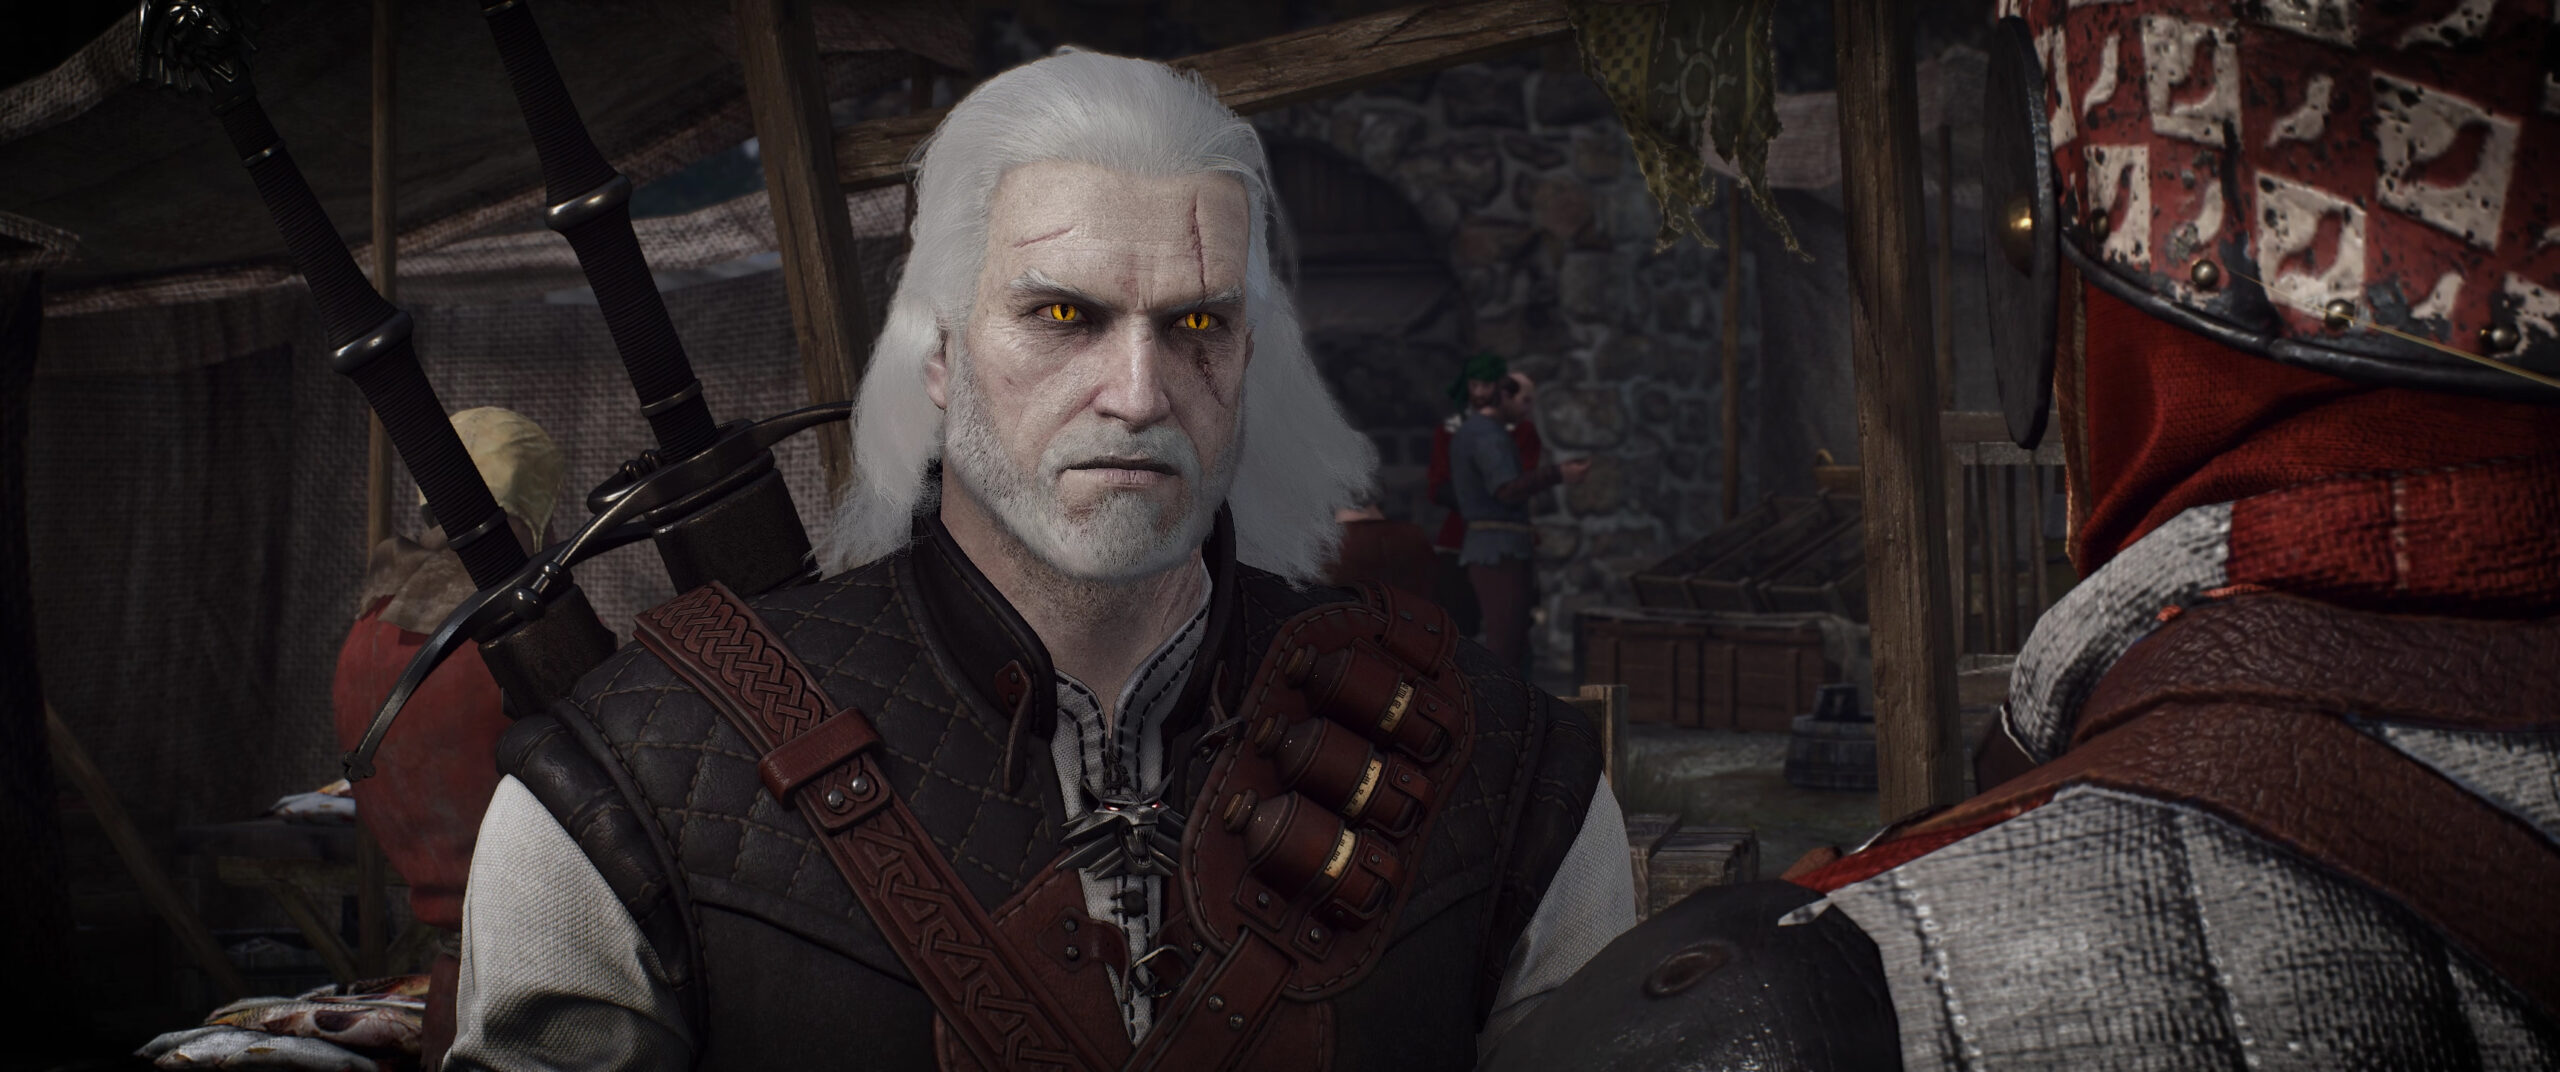 The Witcher 3 Hairworks Overhaul Mod Improves Details And Physics Of Hairworks Styles And Beards